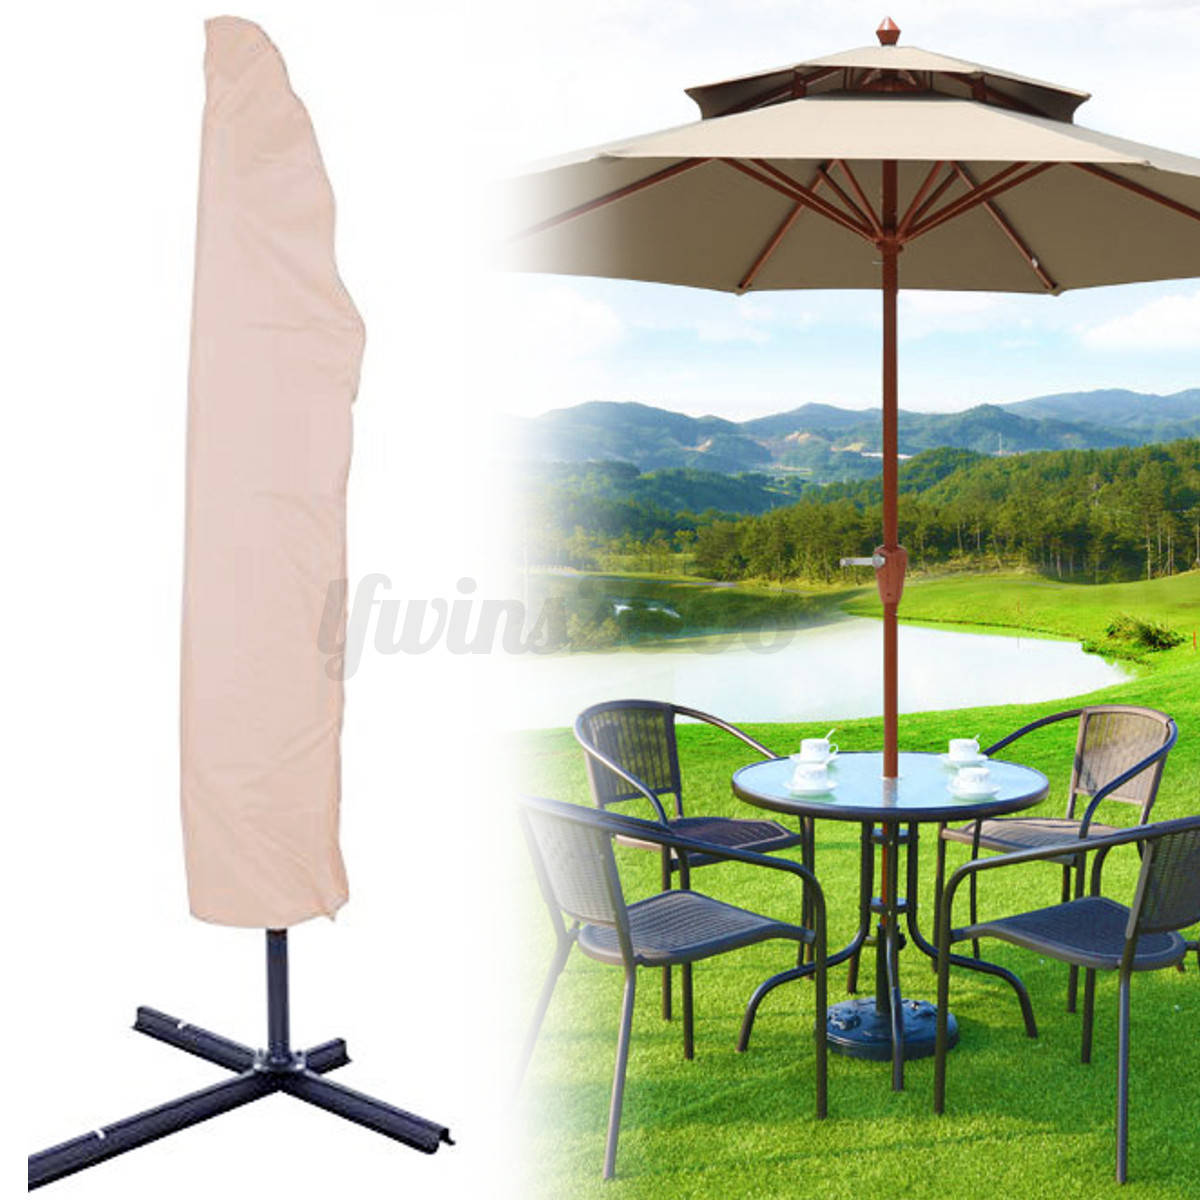 divers banana couvre ext rieur patio parasol housse b che de protection etanche ebay. Black Bedroom Furniture Sets. Home Design Ideas